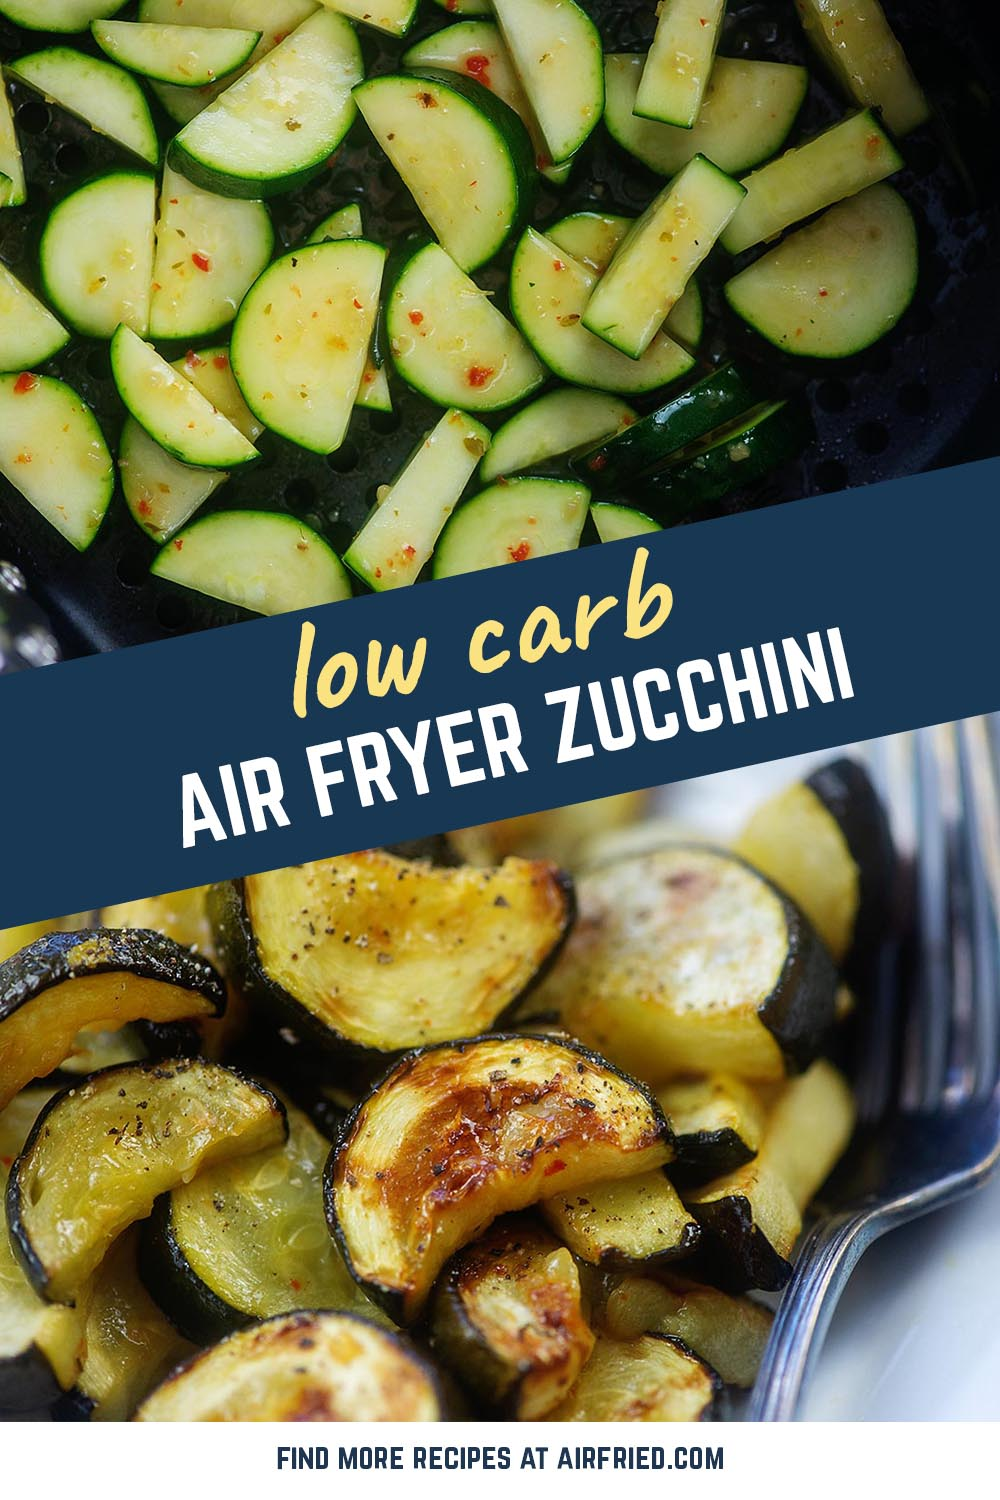 This air fryer zucchini cooks in just 10 minutes! Only 2 ingredients and it's low carb and keto too! #airfryer #lowcarb #zucchini